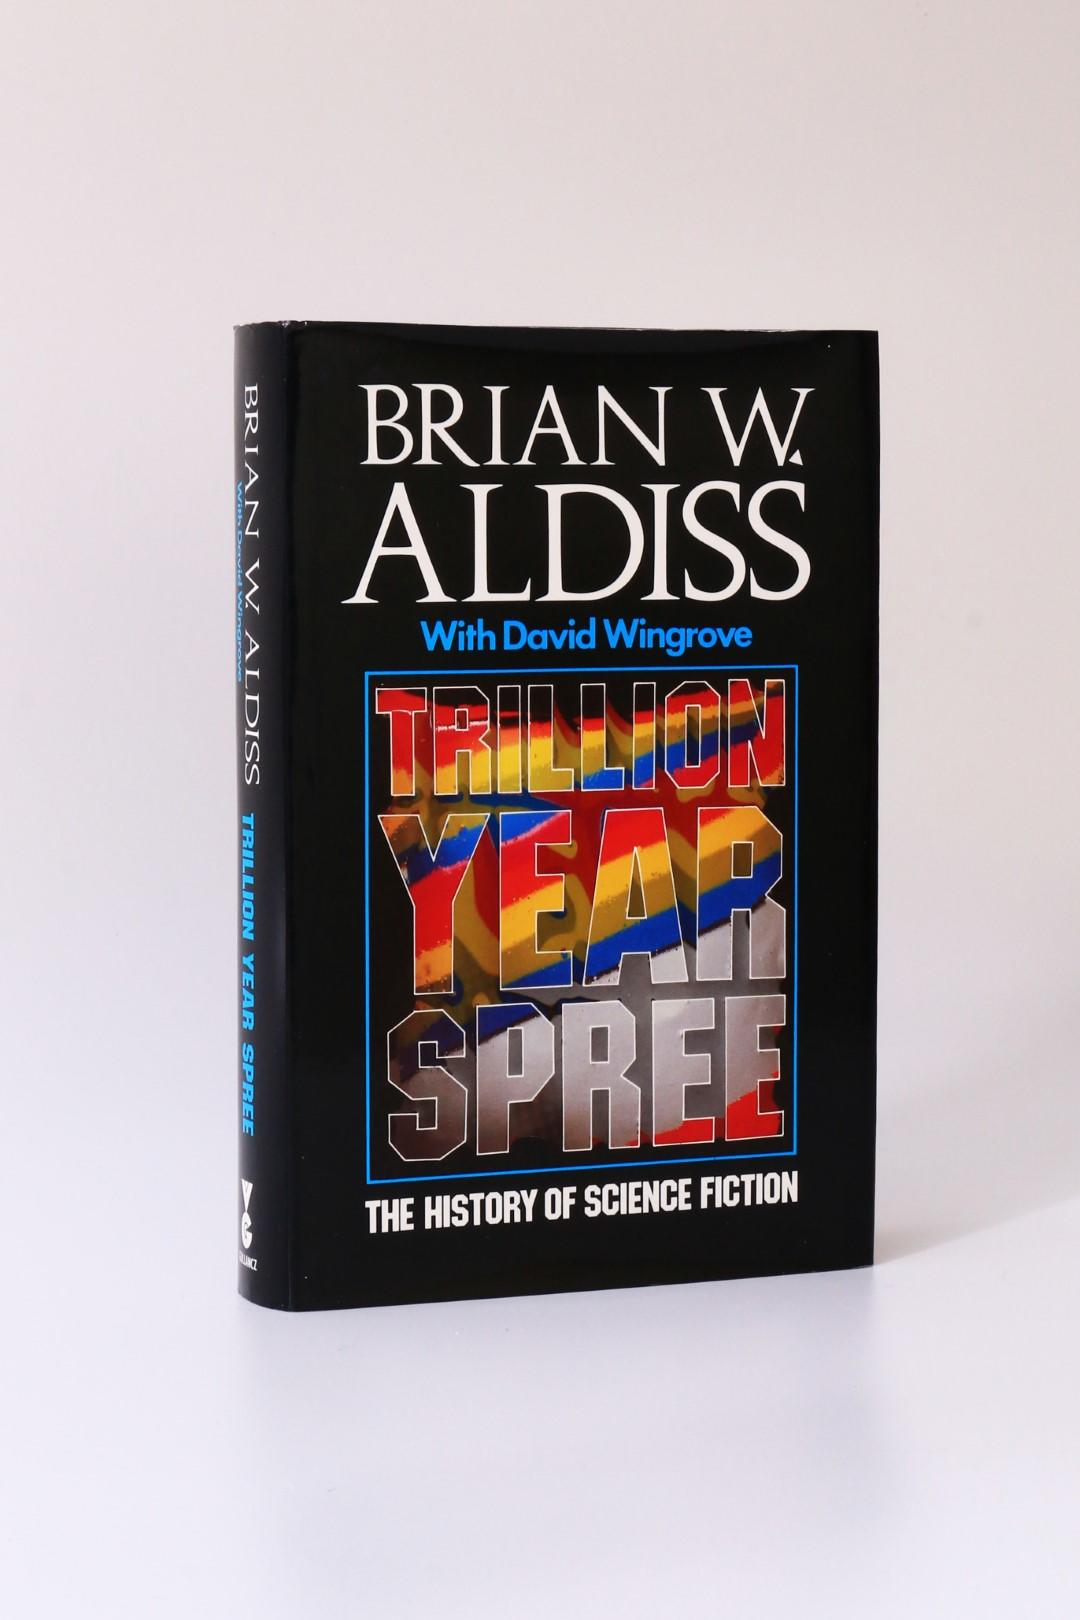 Brian Aldiss [with David Wingrove] - Trillion Year Spree: The History of Science Fiction [Inscribed Association Copy] - Gollancz, 1986, Signed First Edition.